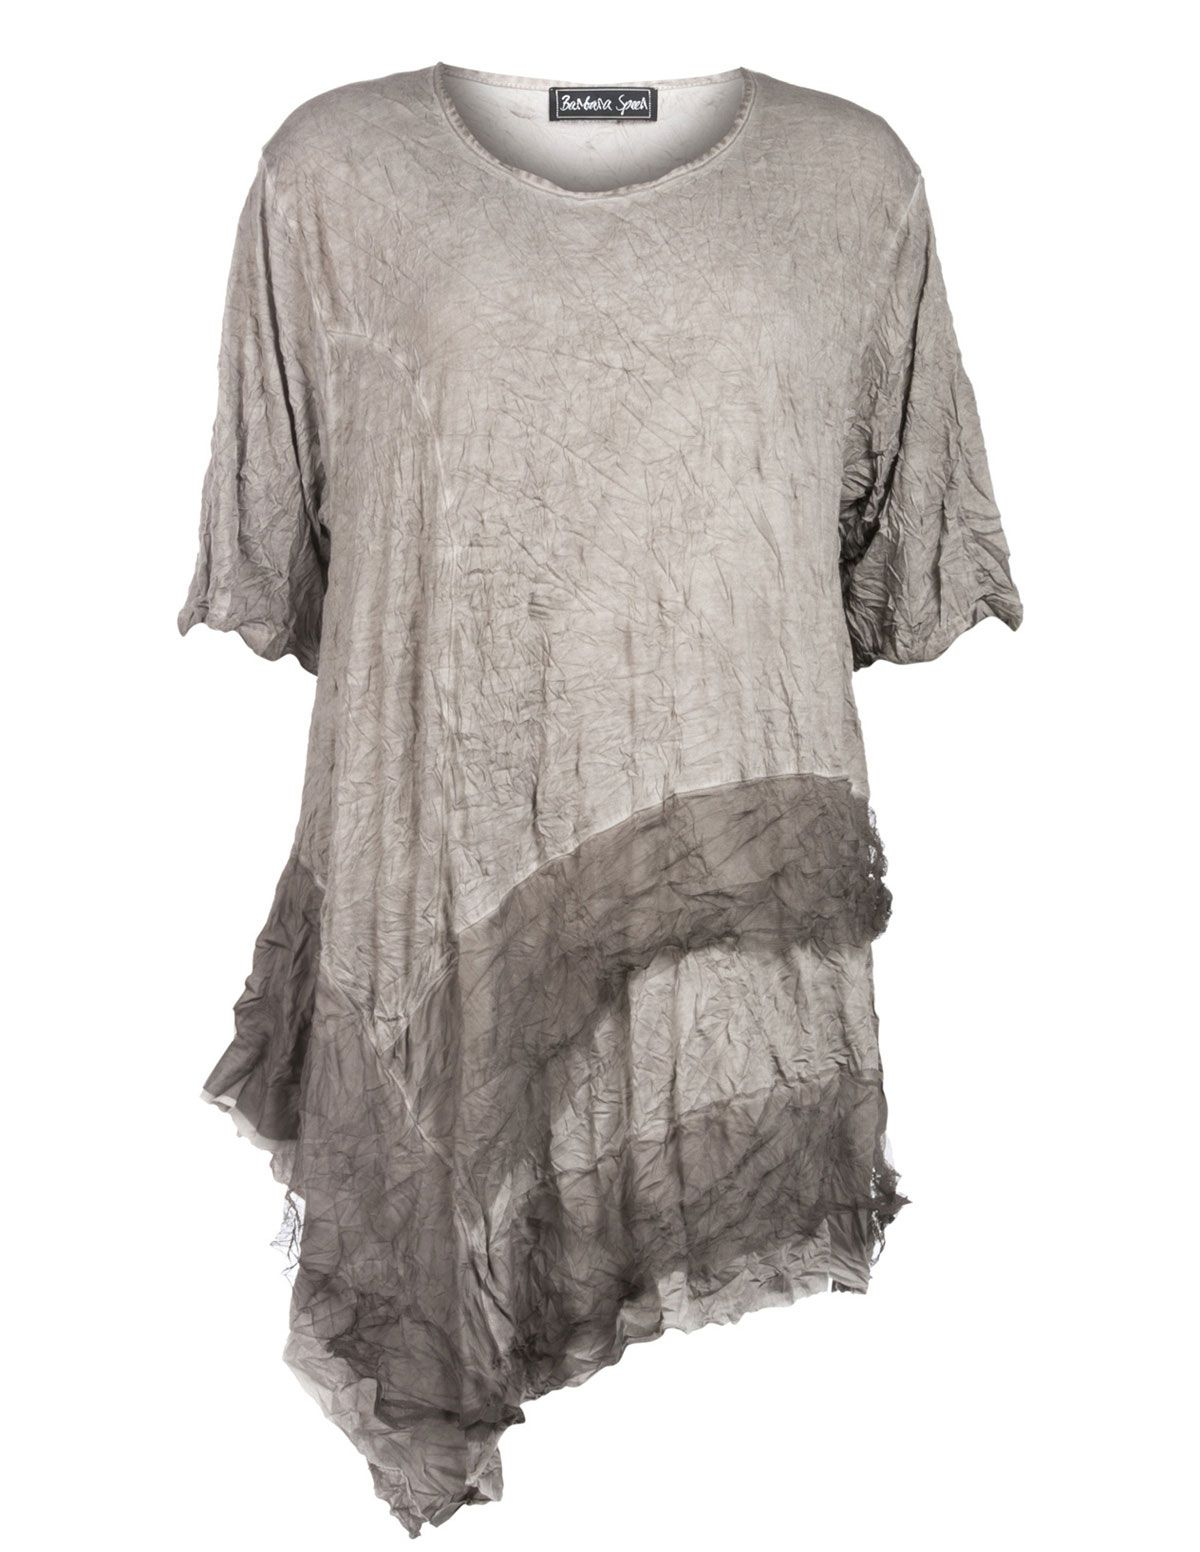 Genial Barbara Speer Geknittertes Shirt Mit Netzstoff In Taupe Grau / Wash Out